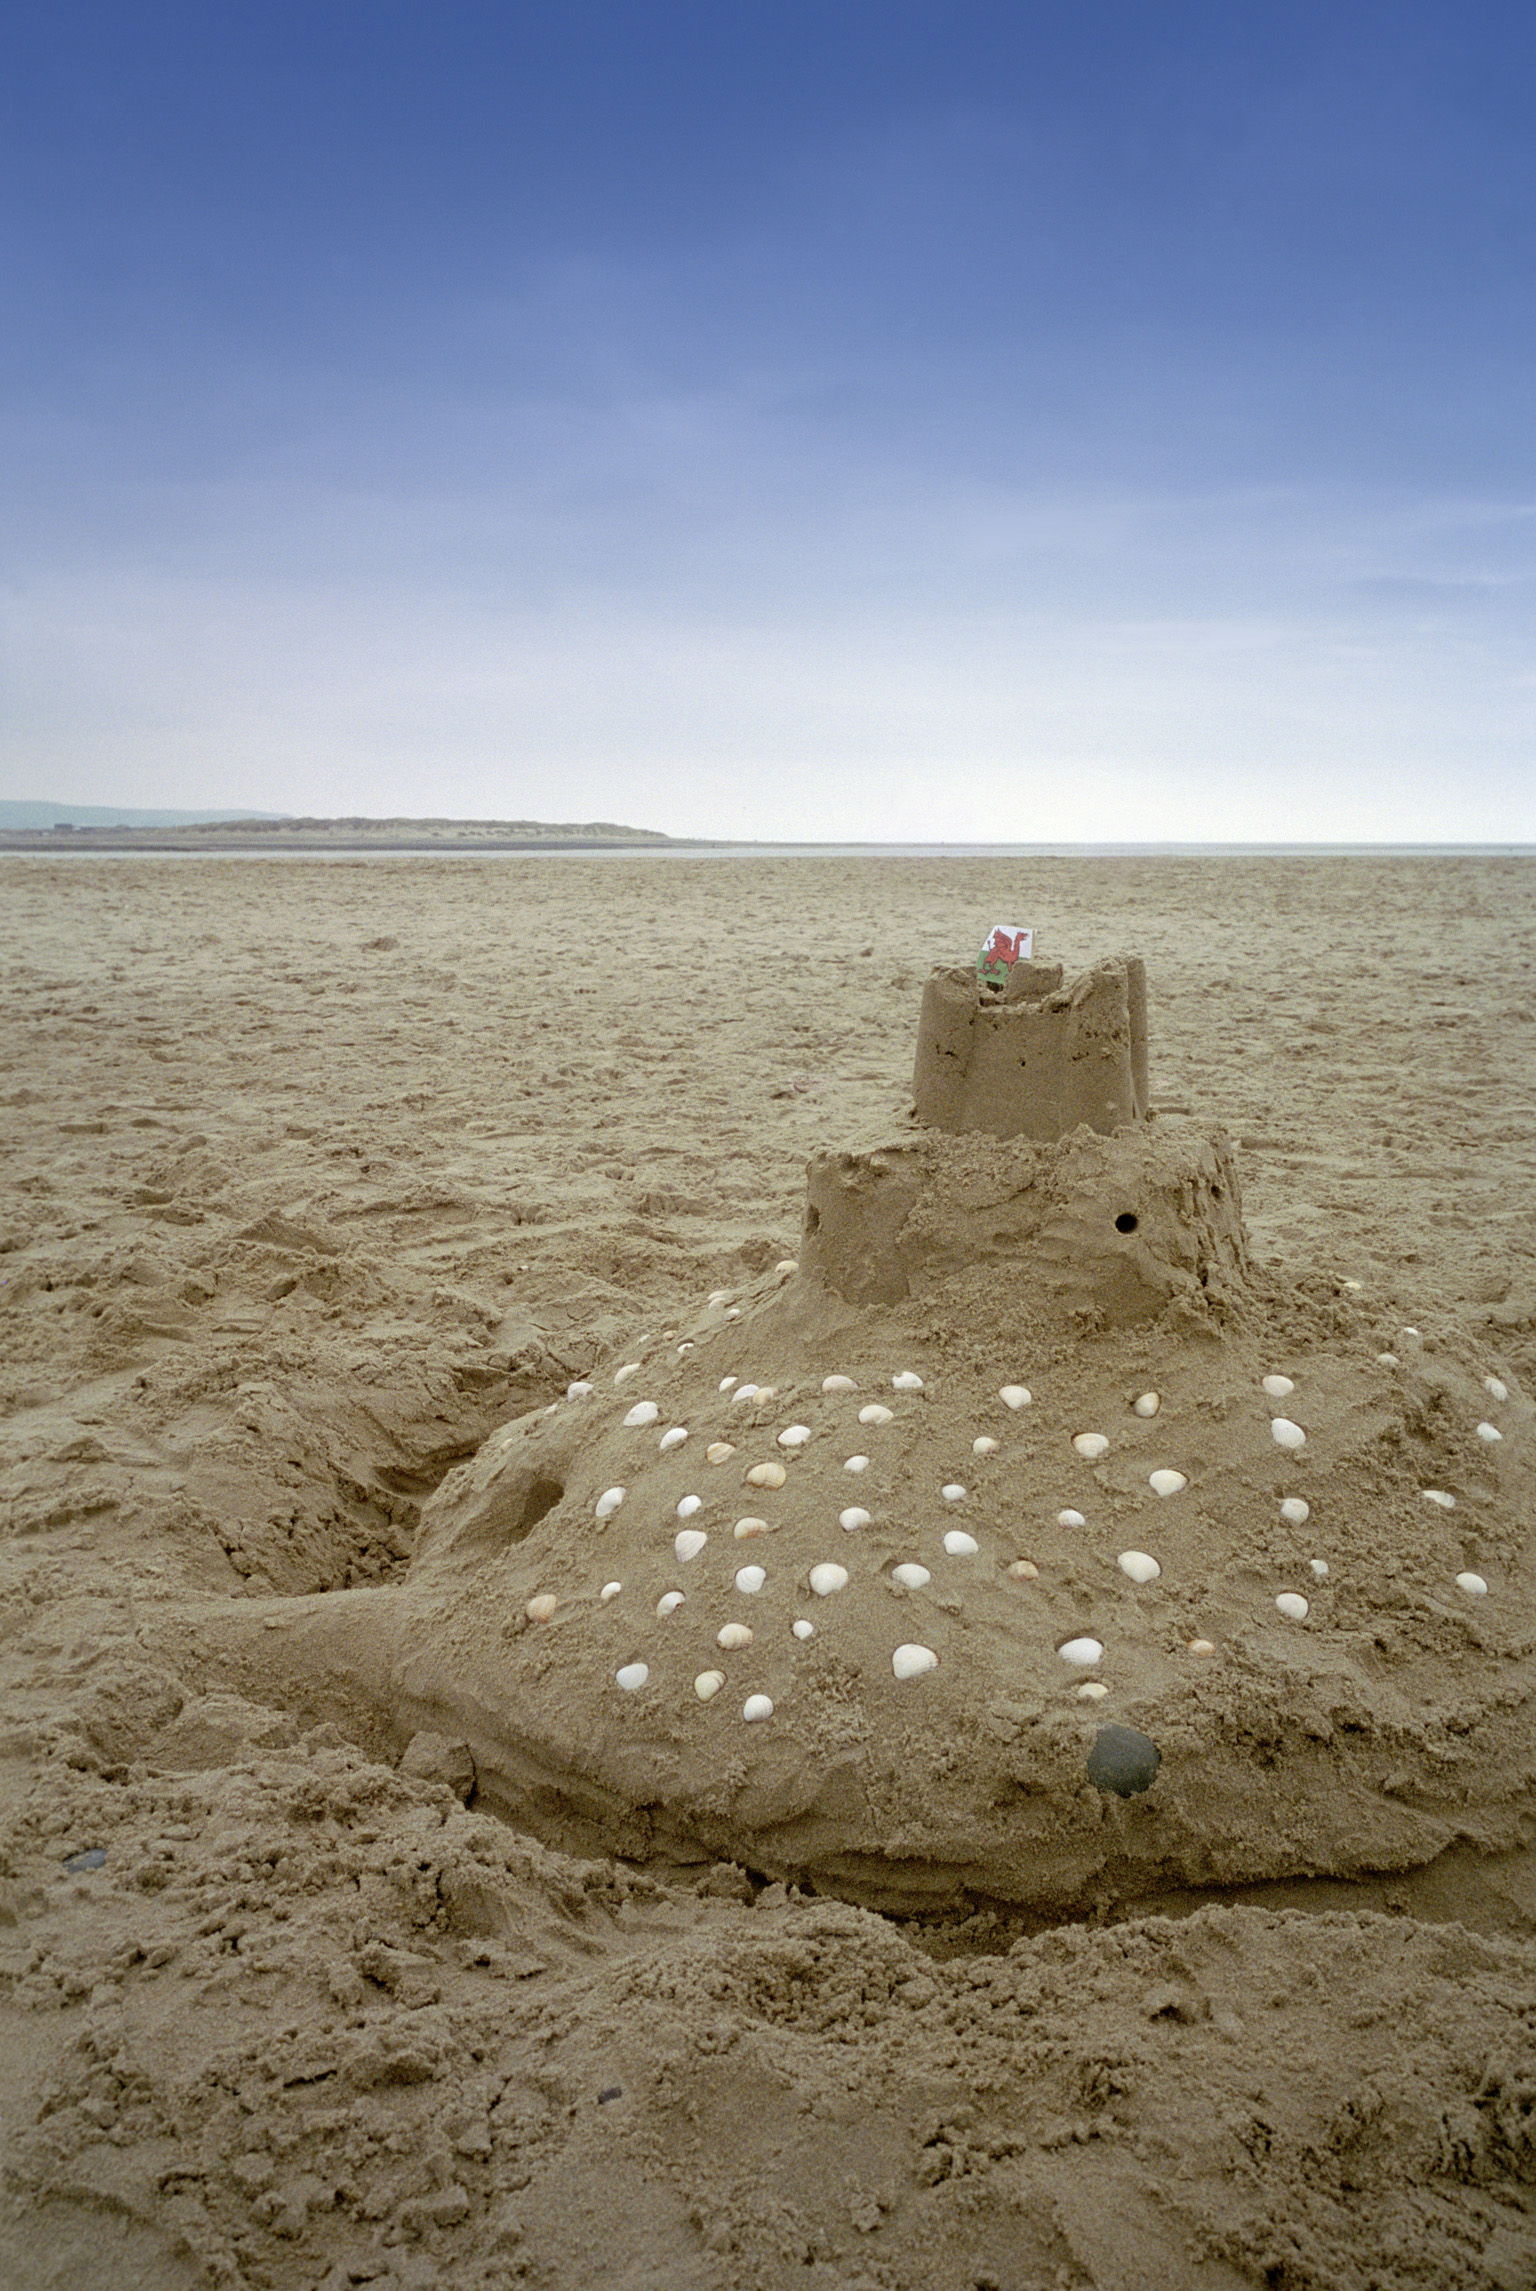 Sandcastle decorated with shells on a beach at the seaside with golden beach sand a reminder of as happy afternoon spent playing in the sand